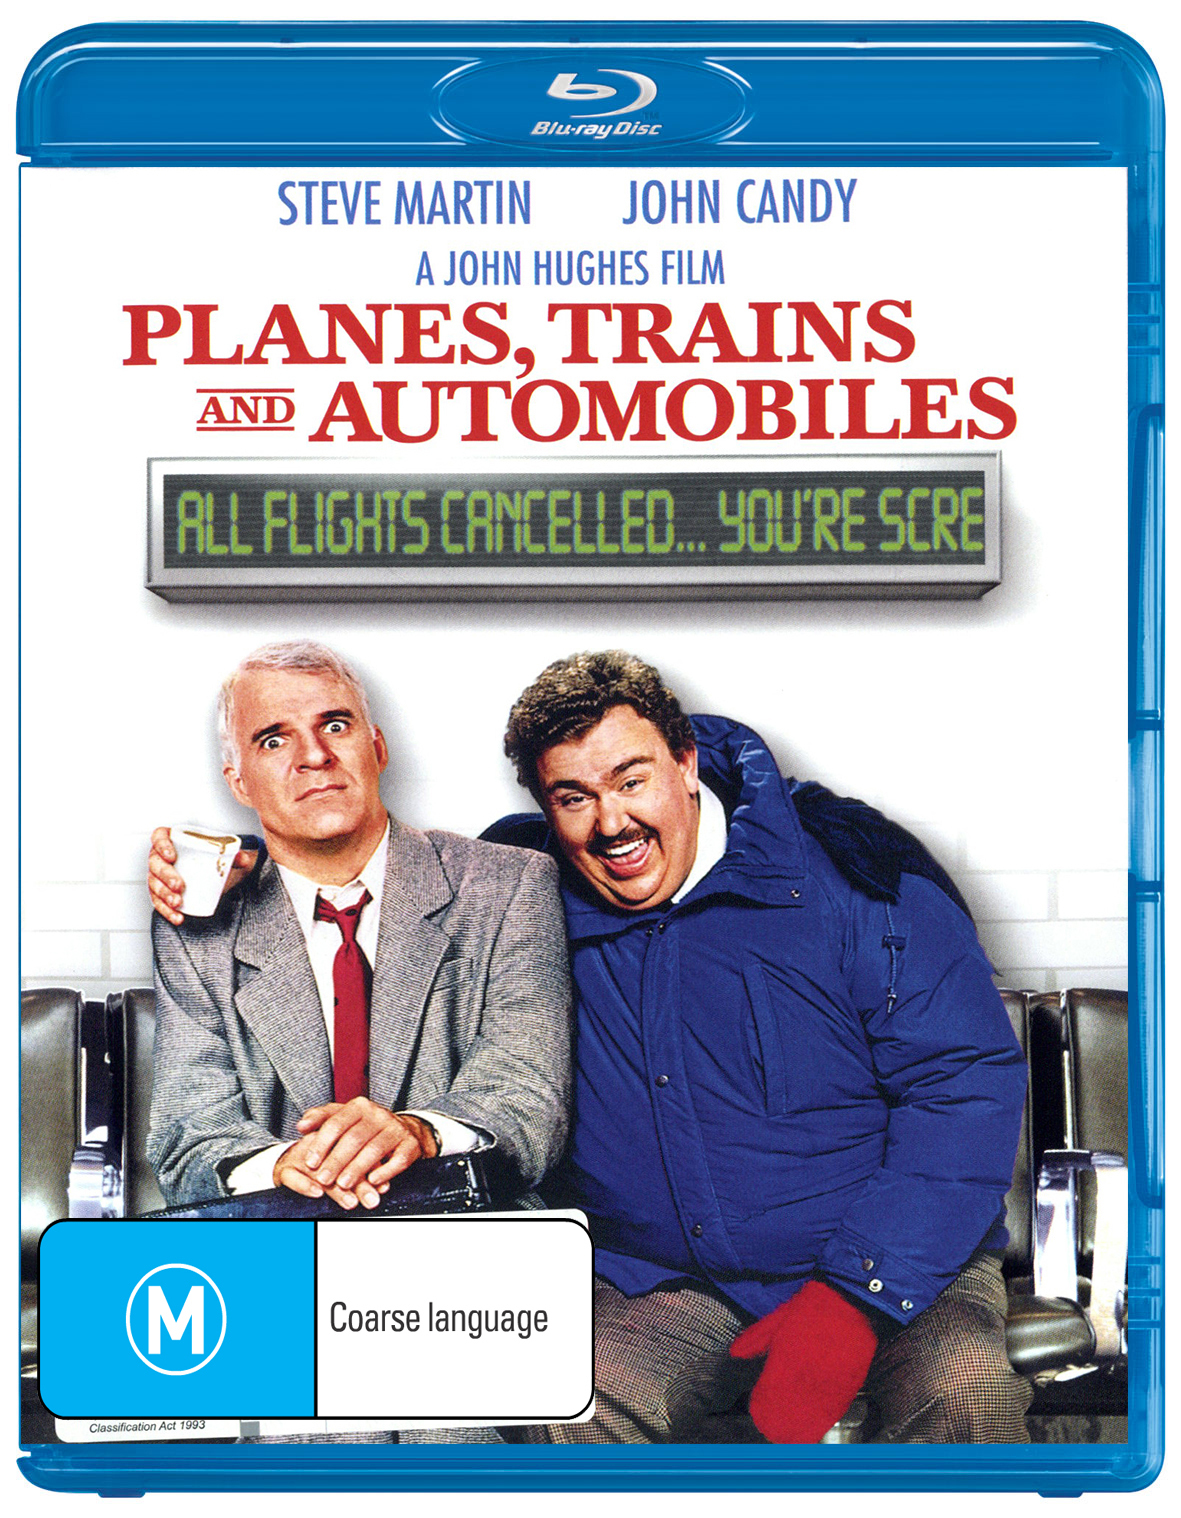 Planes, Trains and Automobiles on Blu-ray image